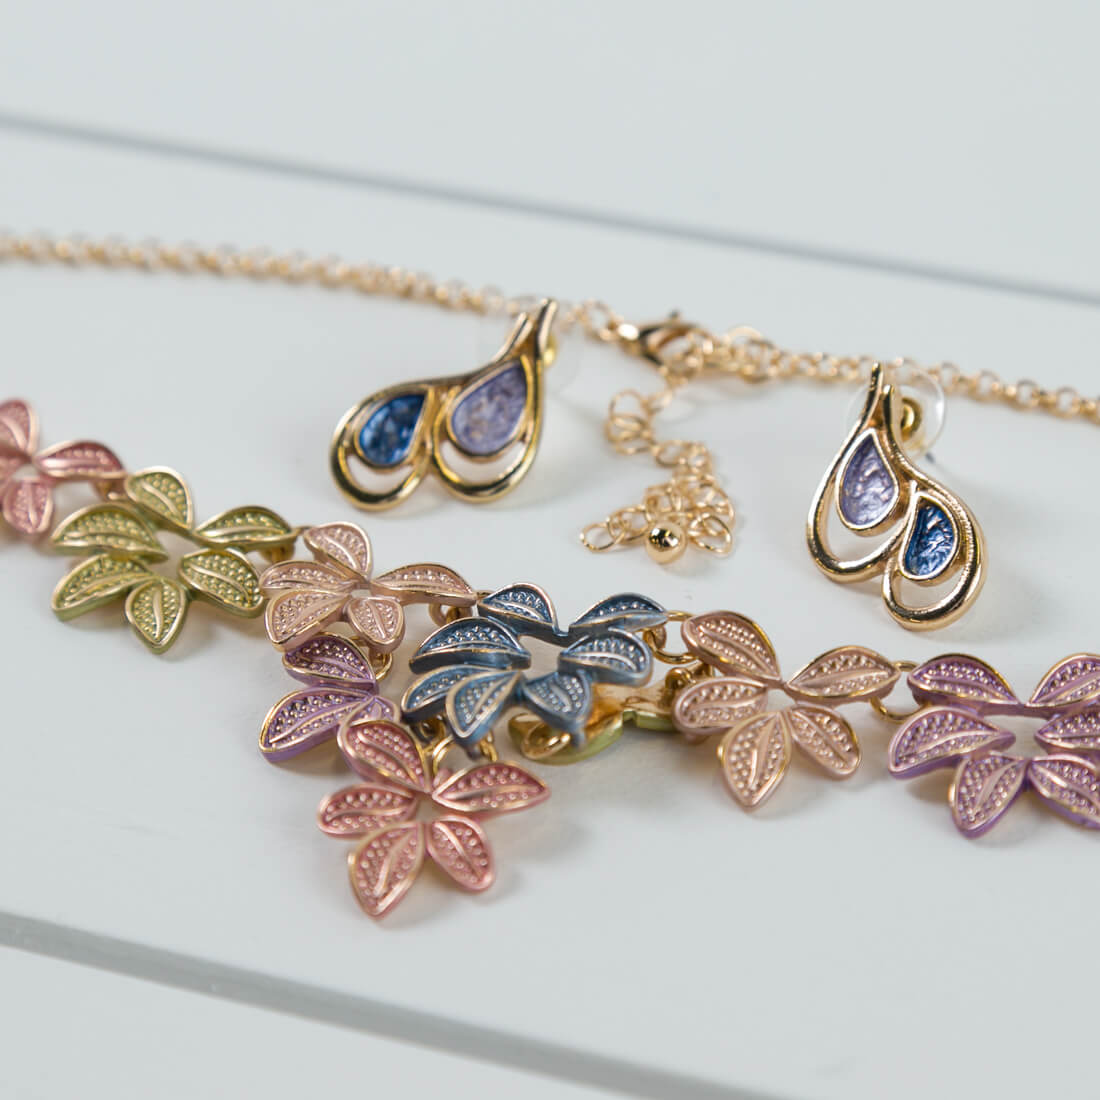 2-Piece Multi-Color Necklace